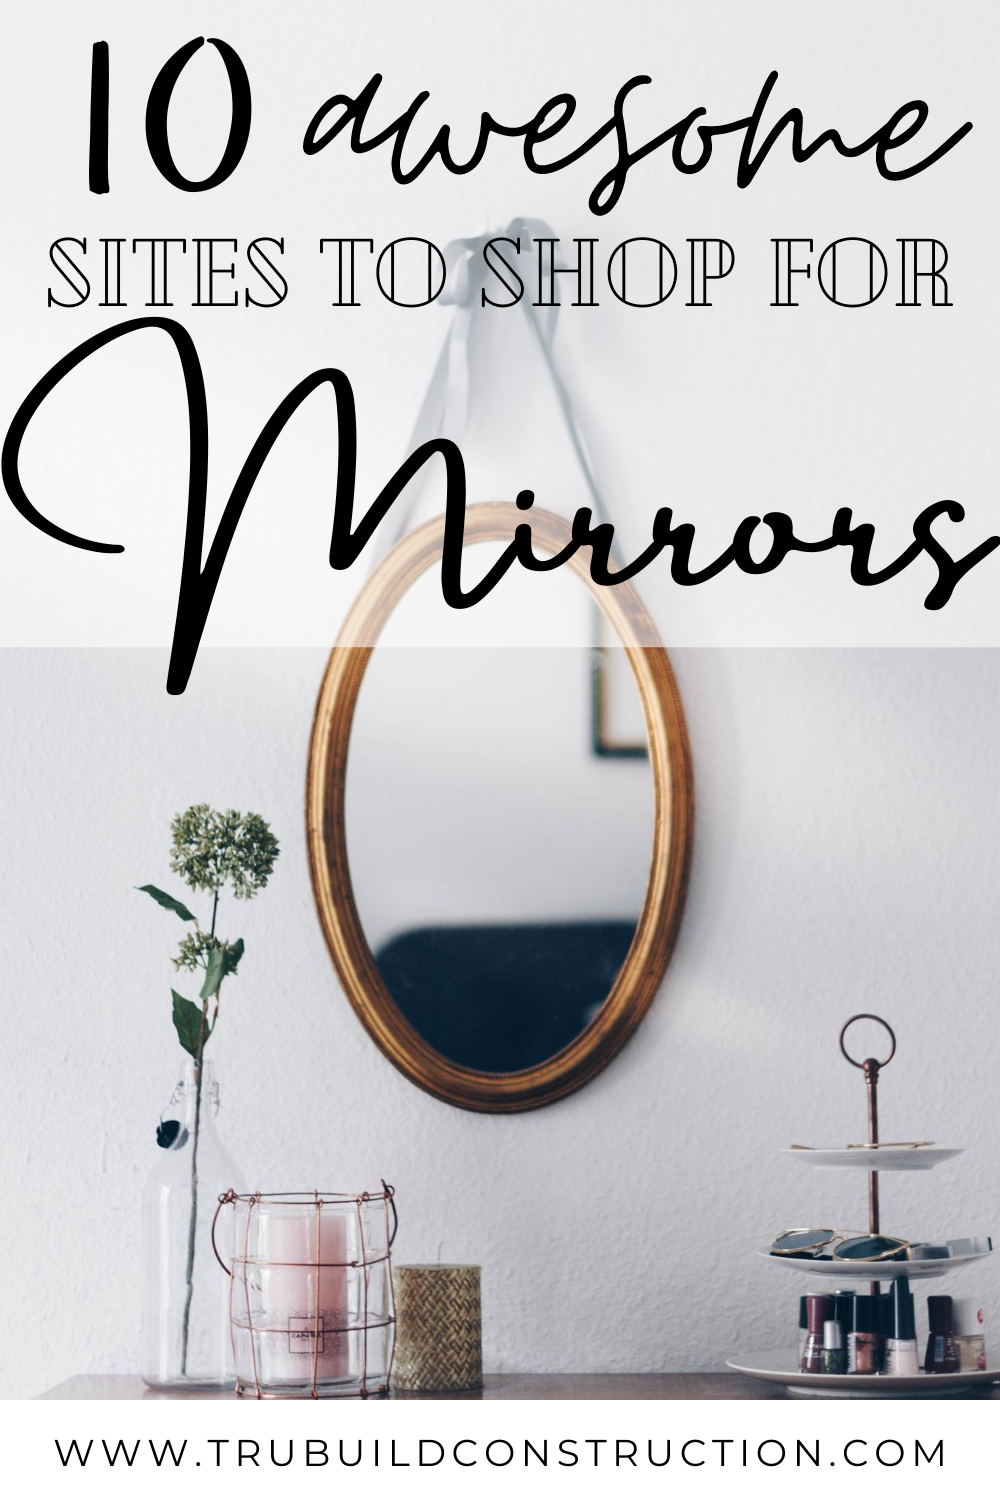 10 Of The Best Websites To Find Mirrors For Your Home Online Trubuild Construction